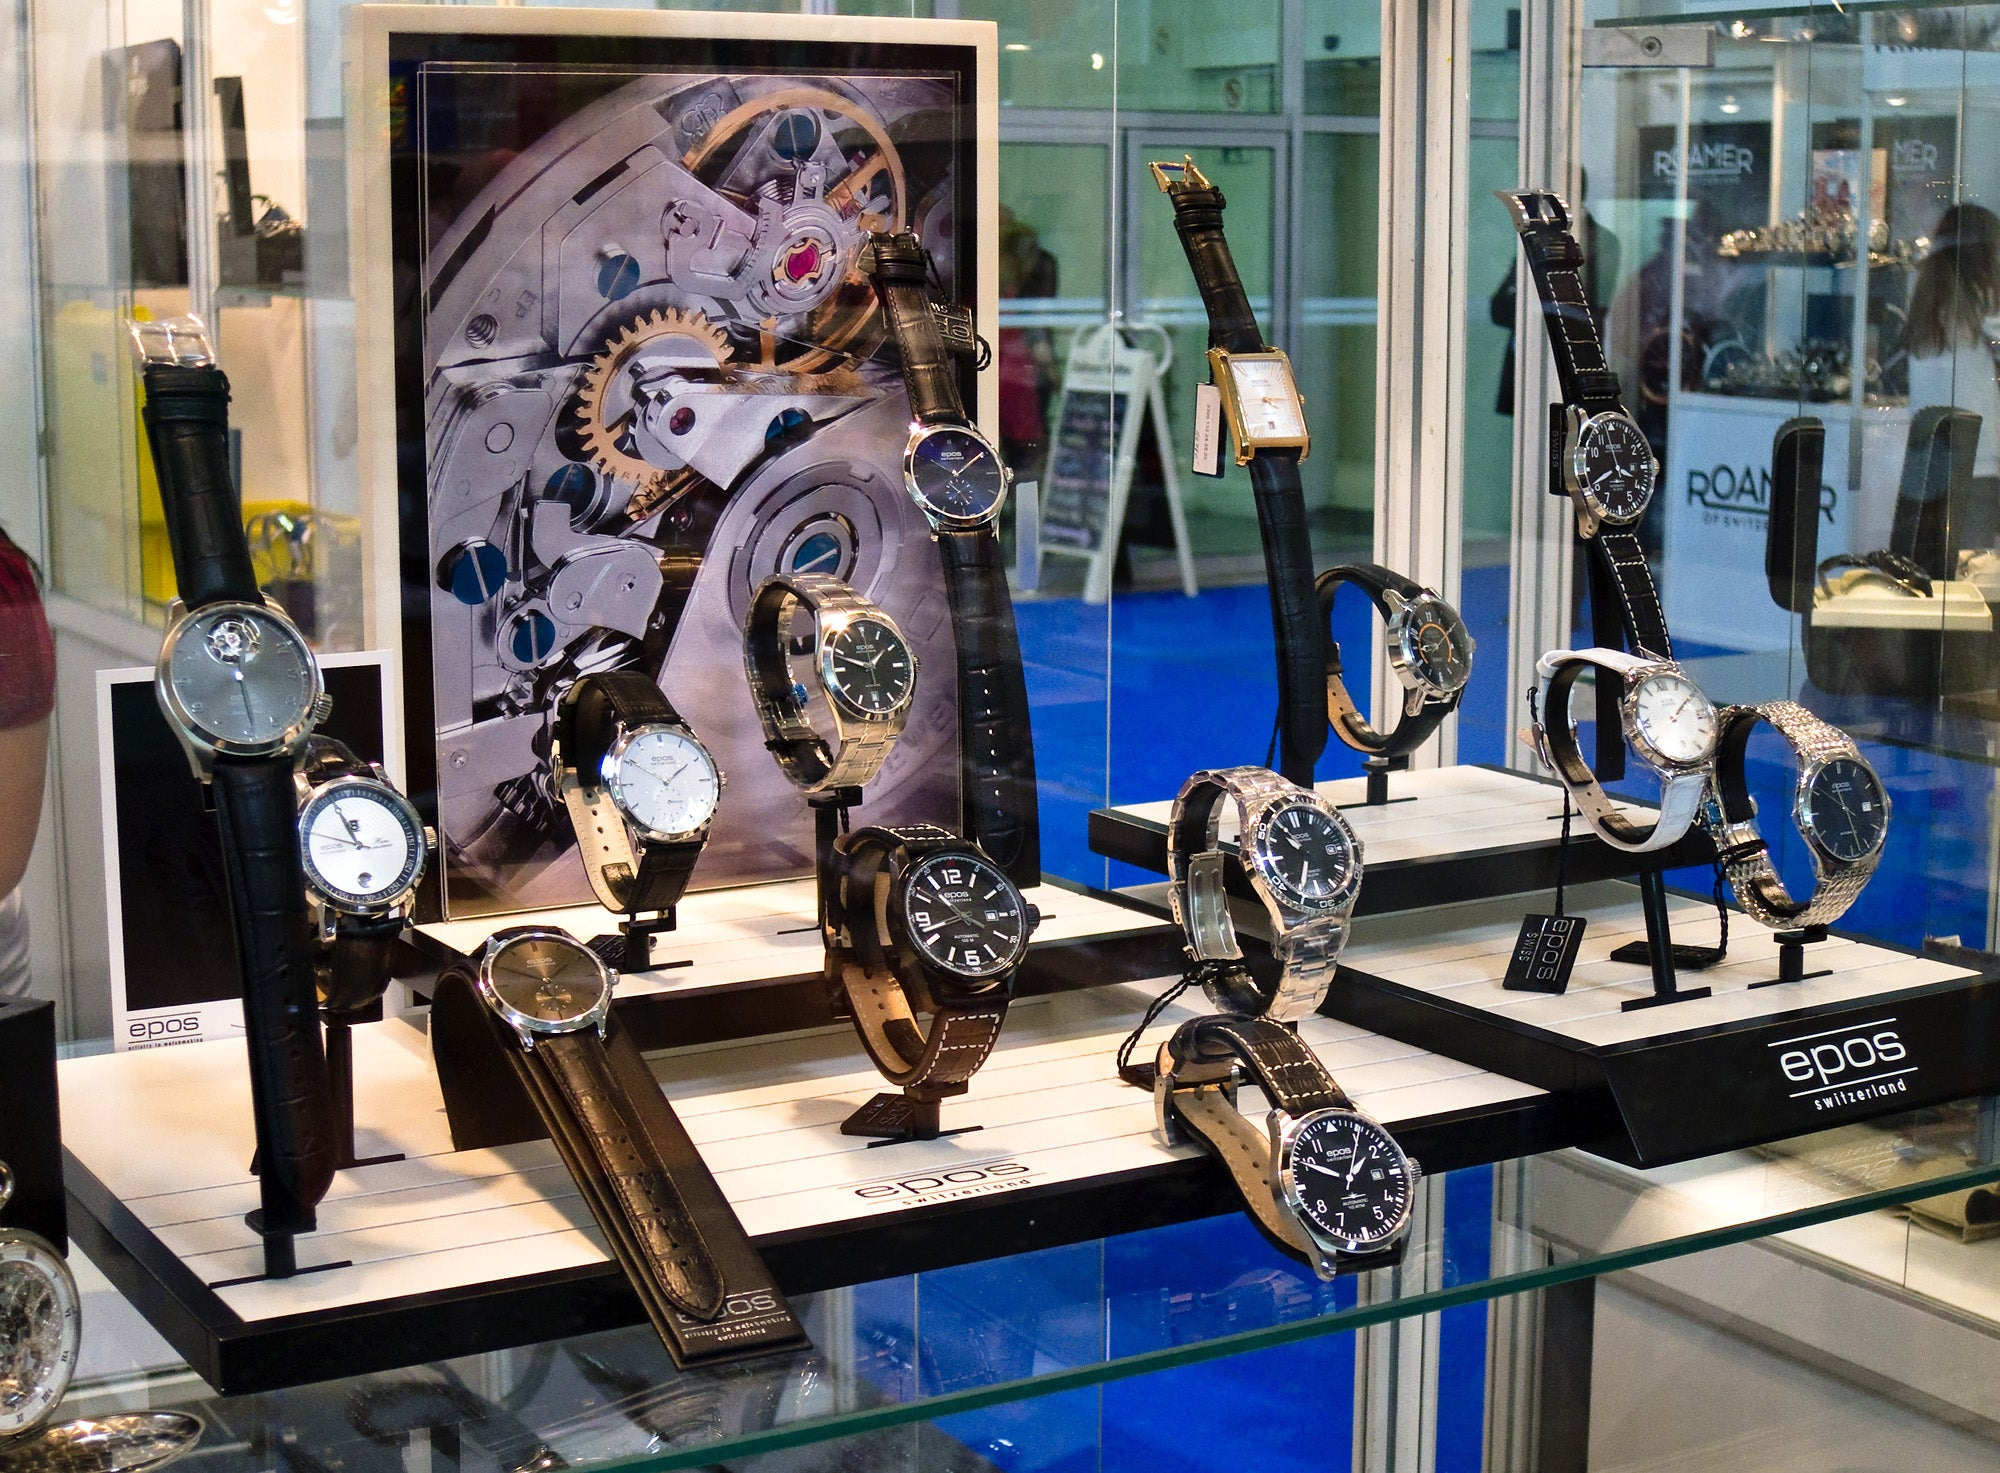 Epos display from Slovak watchfair